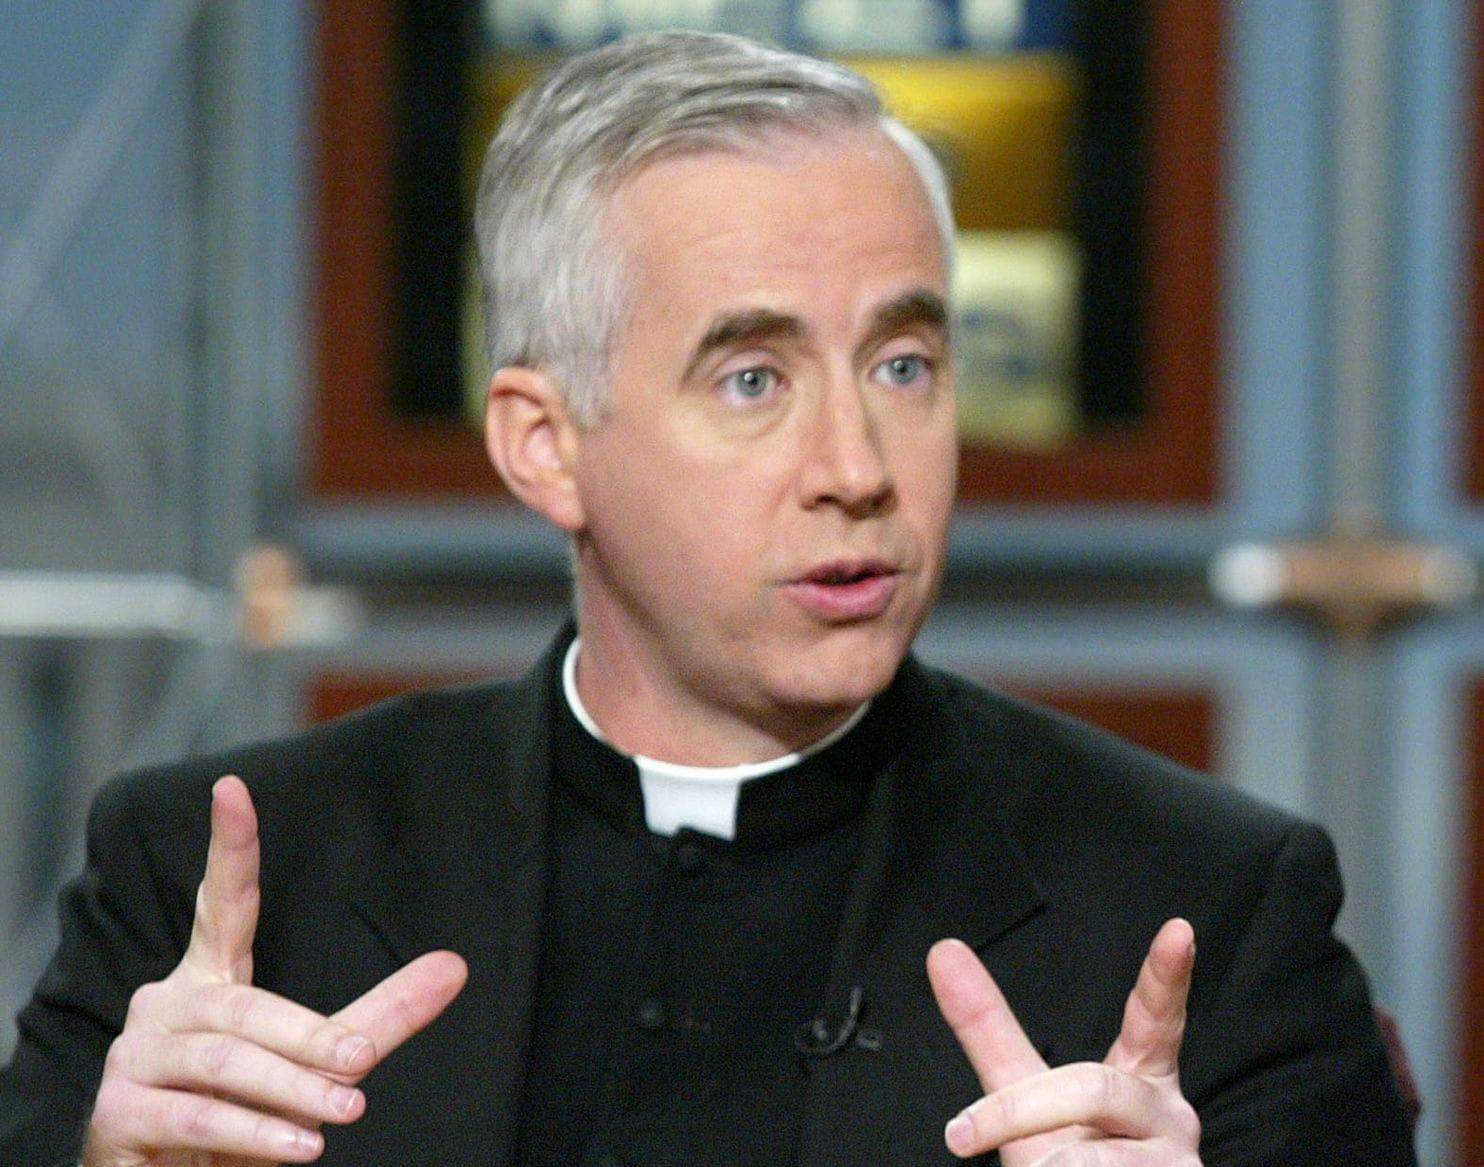 Opus Dei paid $977,000 to settle sexual misconduct claim against prominent Catholic priest